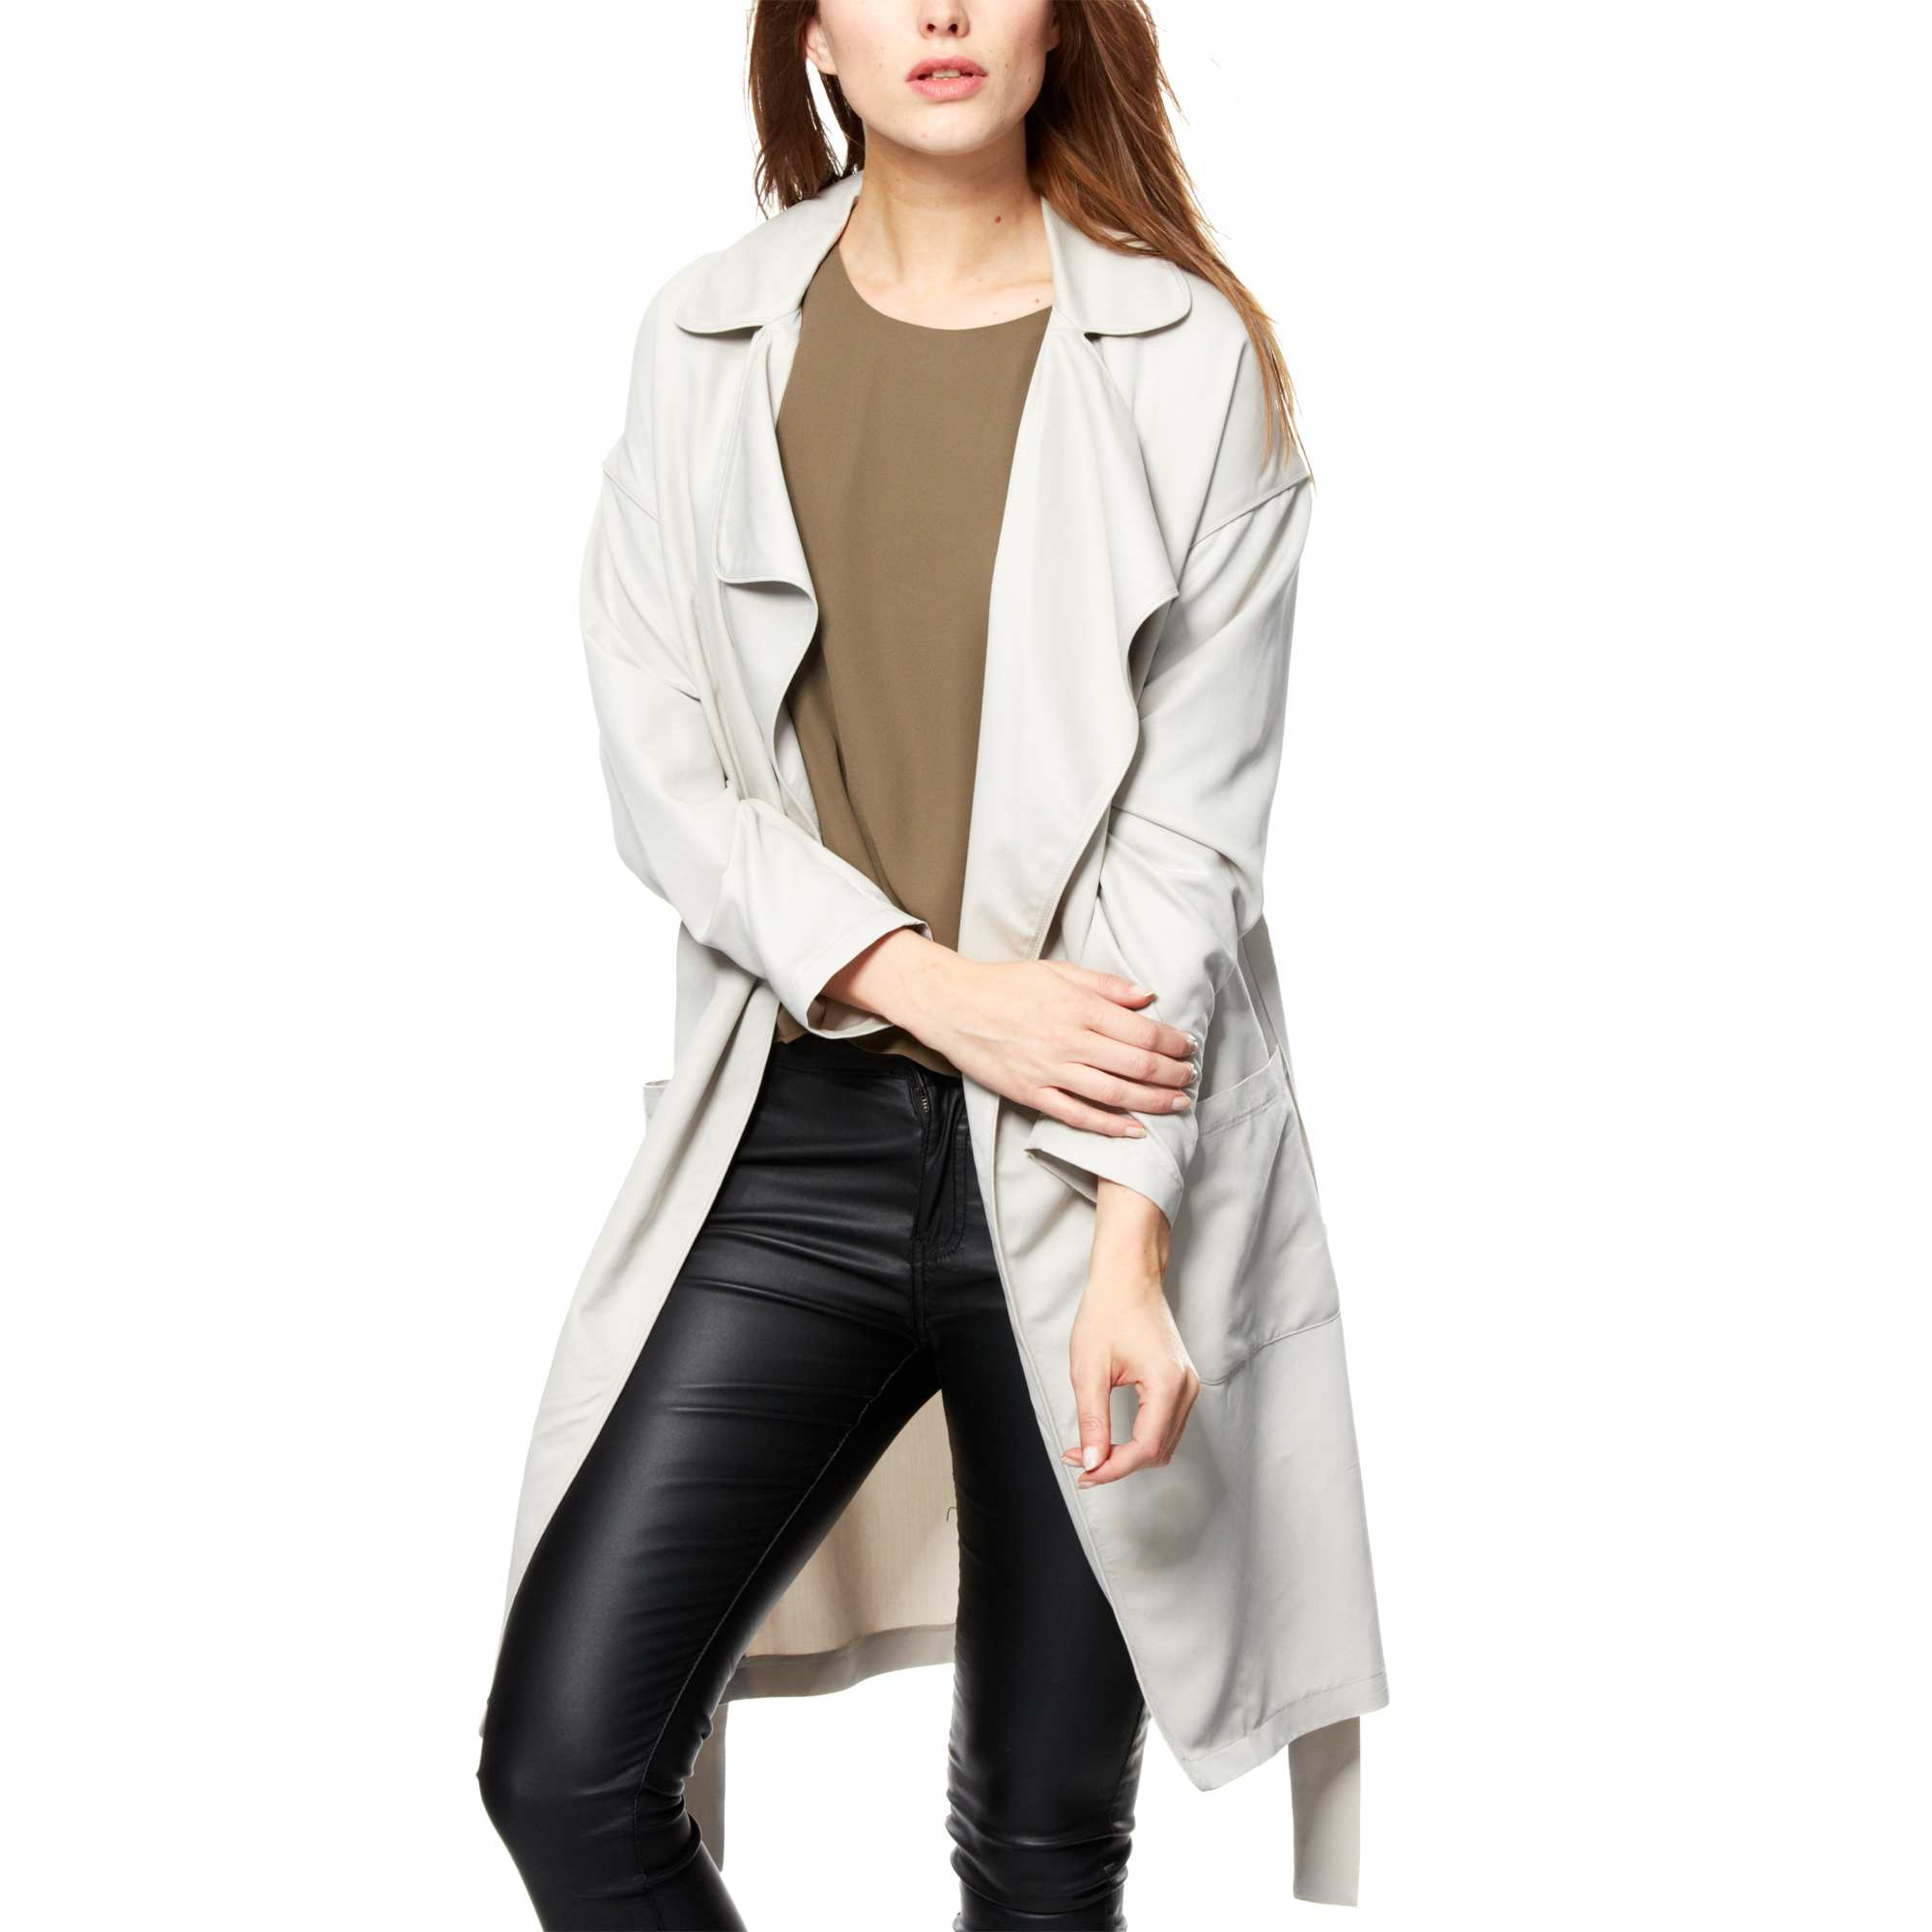 Manteau Fluide Fa On Trench Femme 24 50